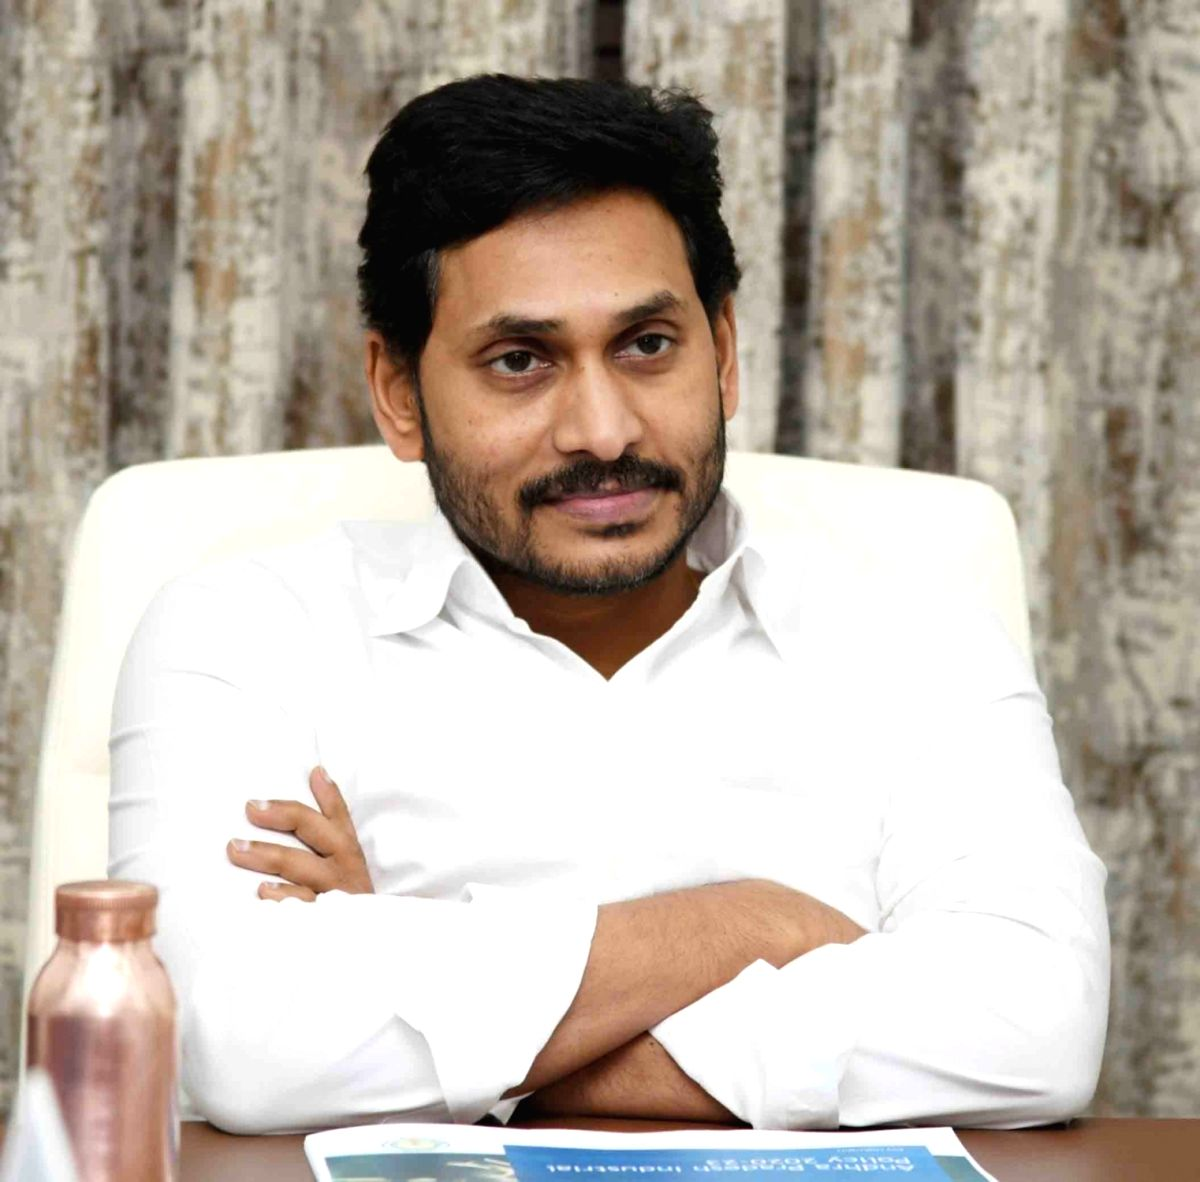 Tadepalli: Andhra Pradesh Chief Minister YS Jagan Mohan Reddy presides over a meeting to review the new industrial policy ahead of its implementation, at his camp office in Tadepalli on July 2, 2020.